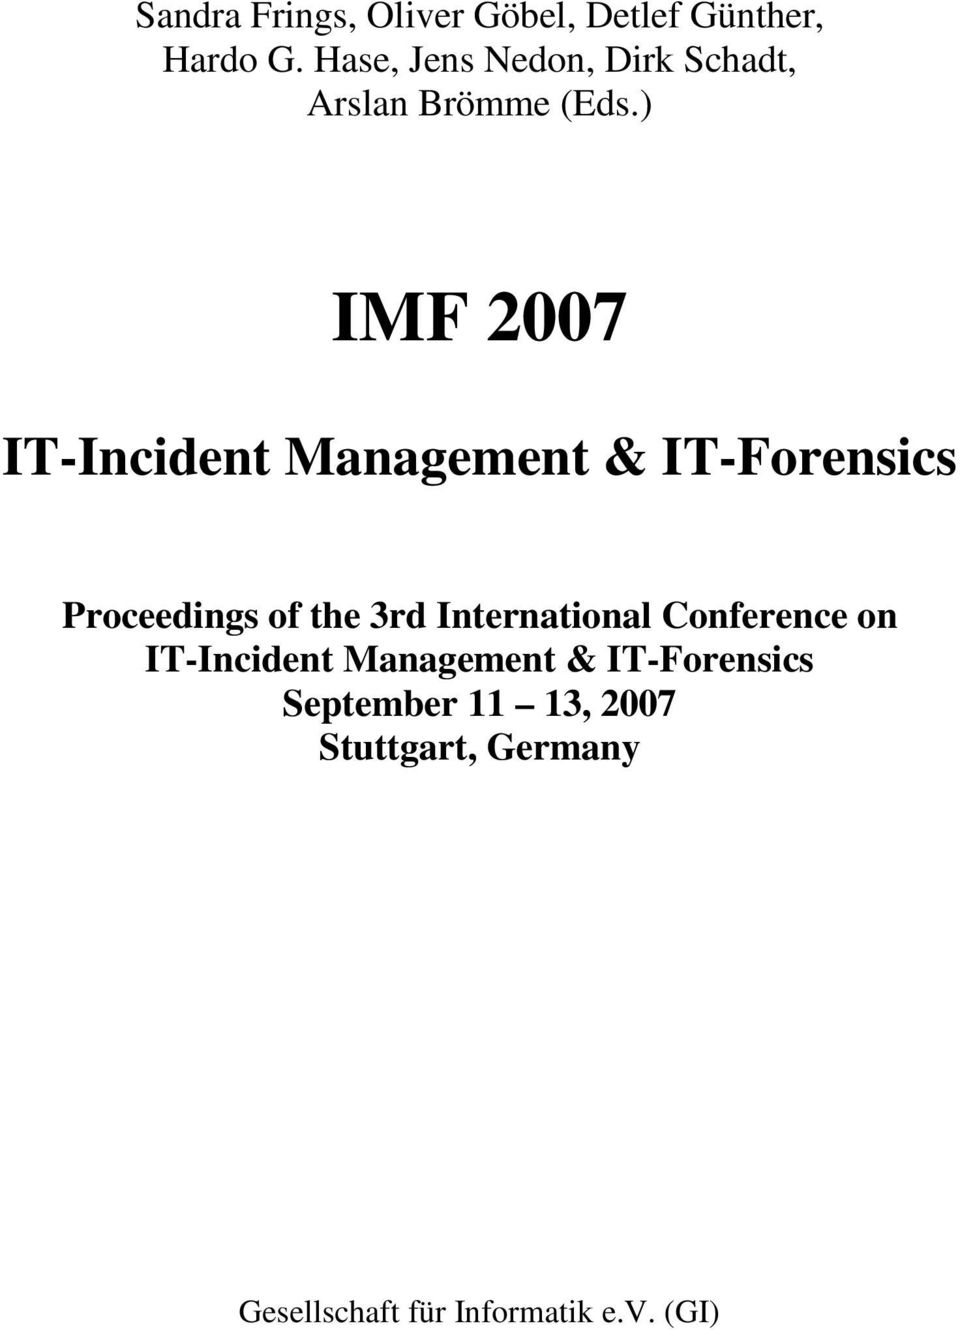 ) IMF 2007 IT-IncidentManagement & IT-Forensics Proceedings of the3rd